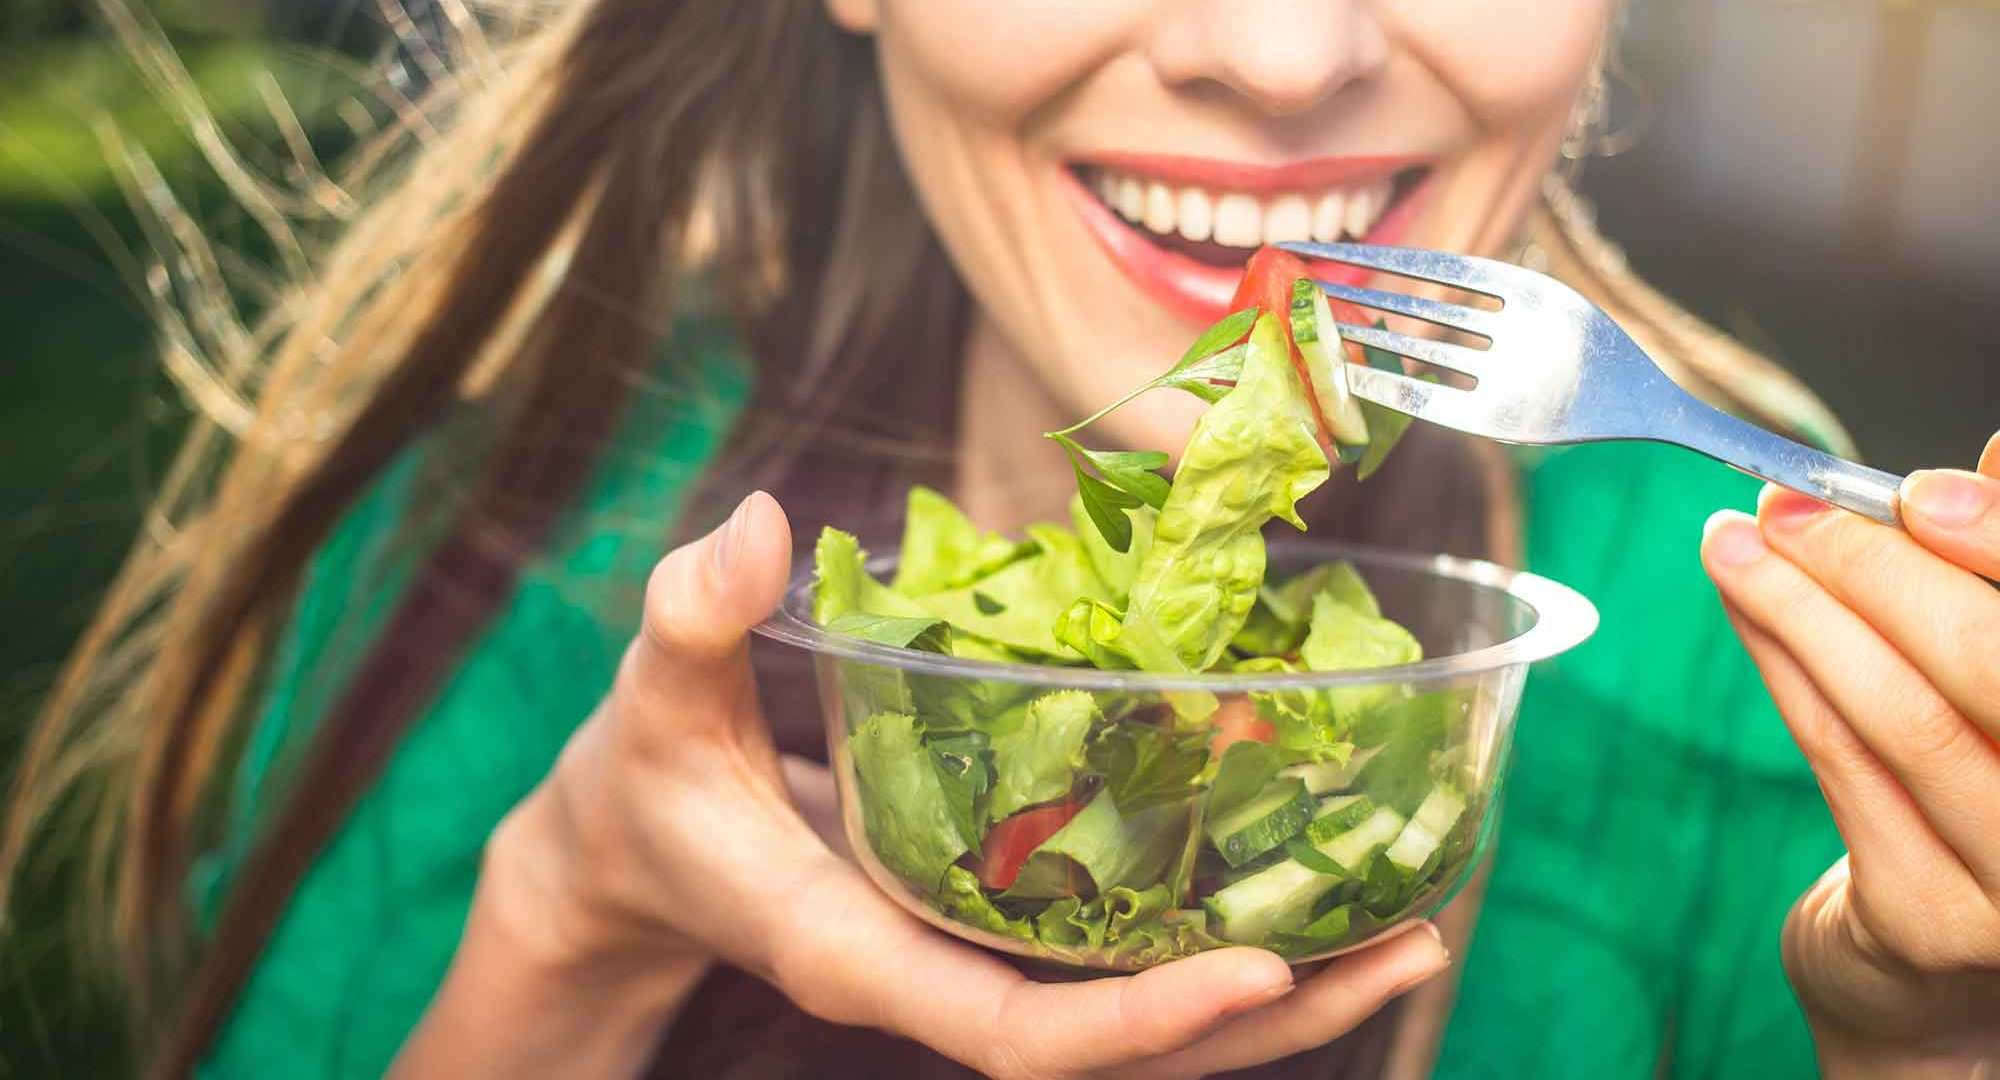 eating foods that impact our oral microbiome